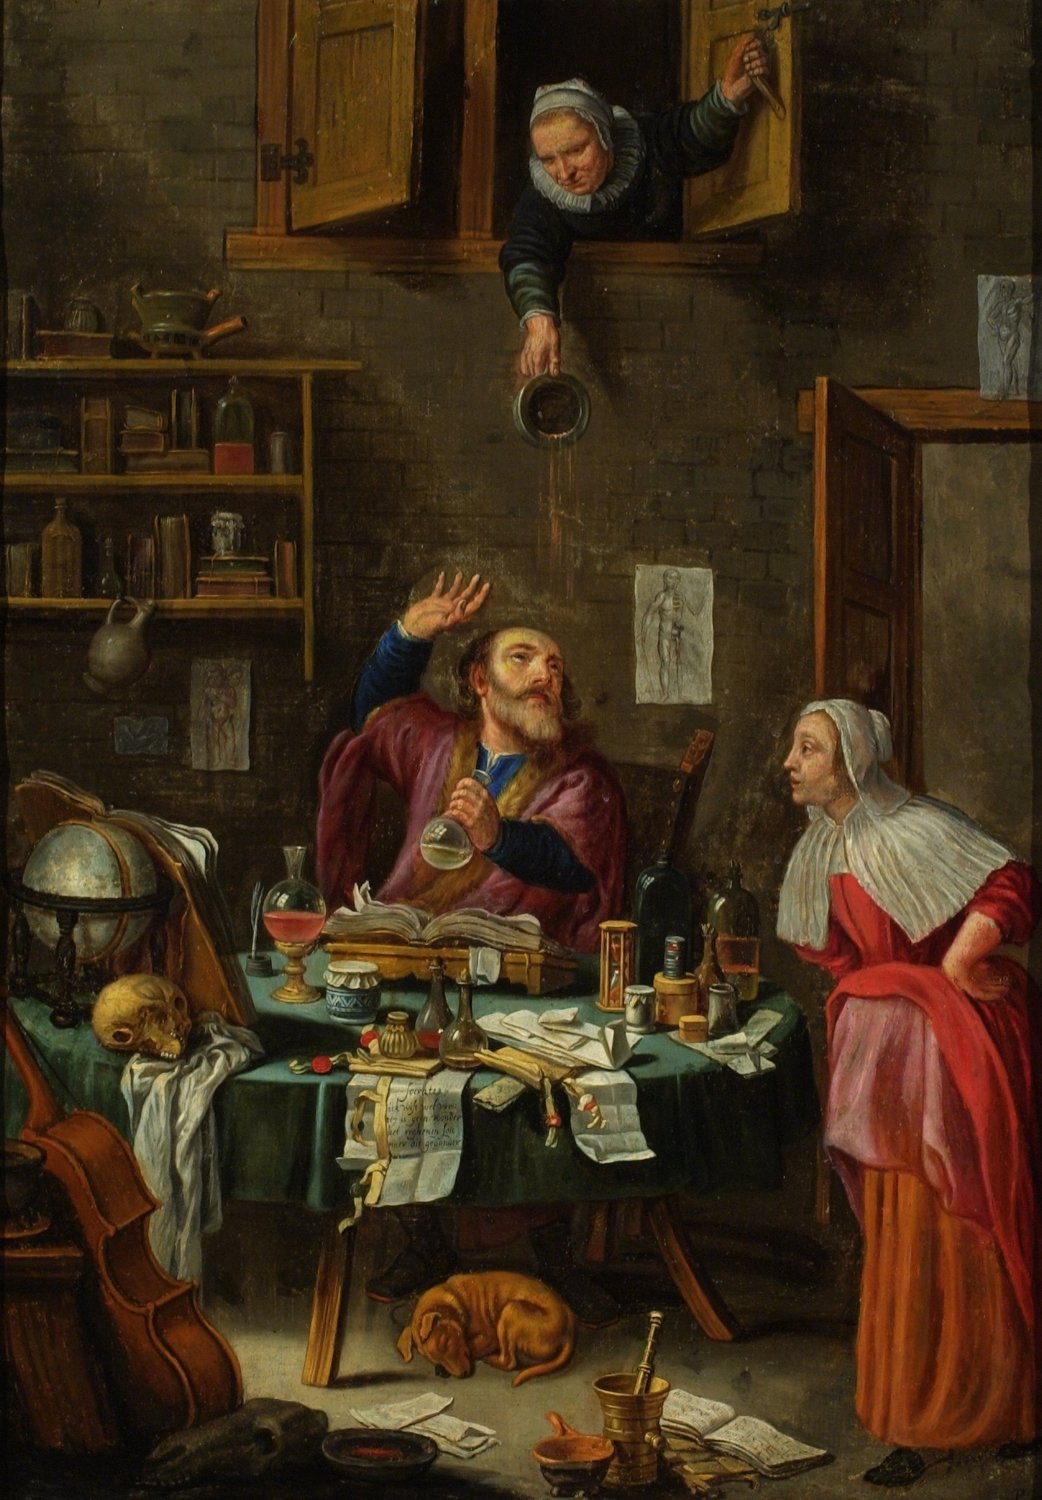 """While uroscopy was a commonly used method, images of these """"piskijkers"""" (piss examiners) were often eroticized exaggerations #MuseumMonday https://t.co/3zsBhI7A1L"""